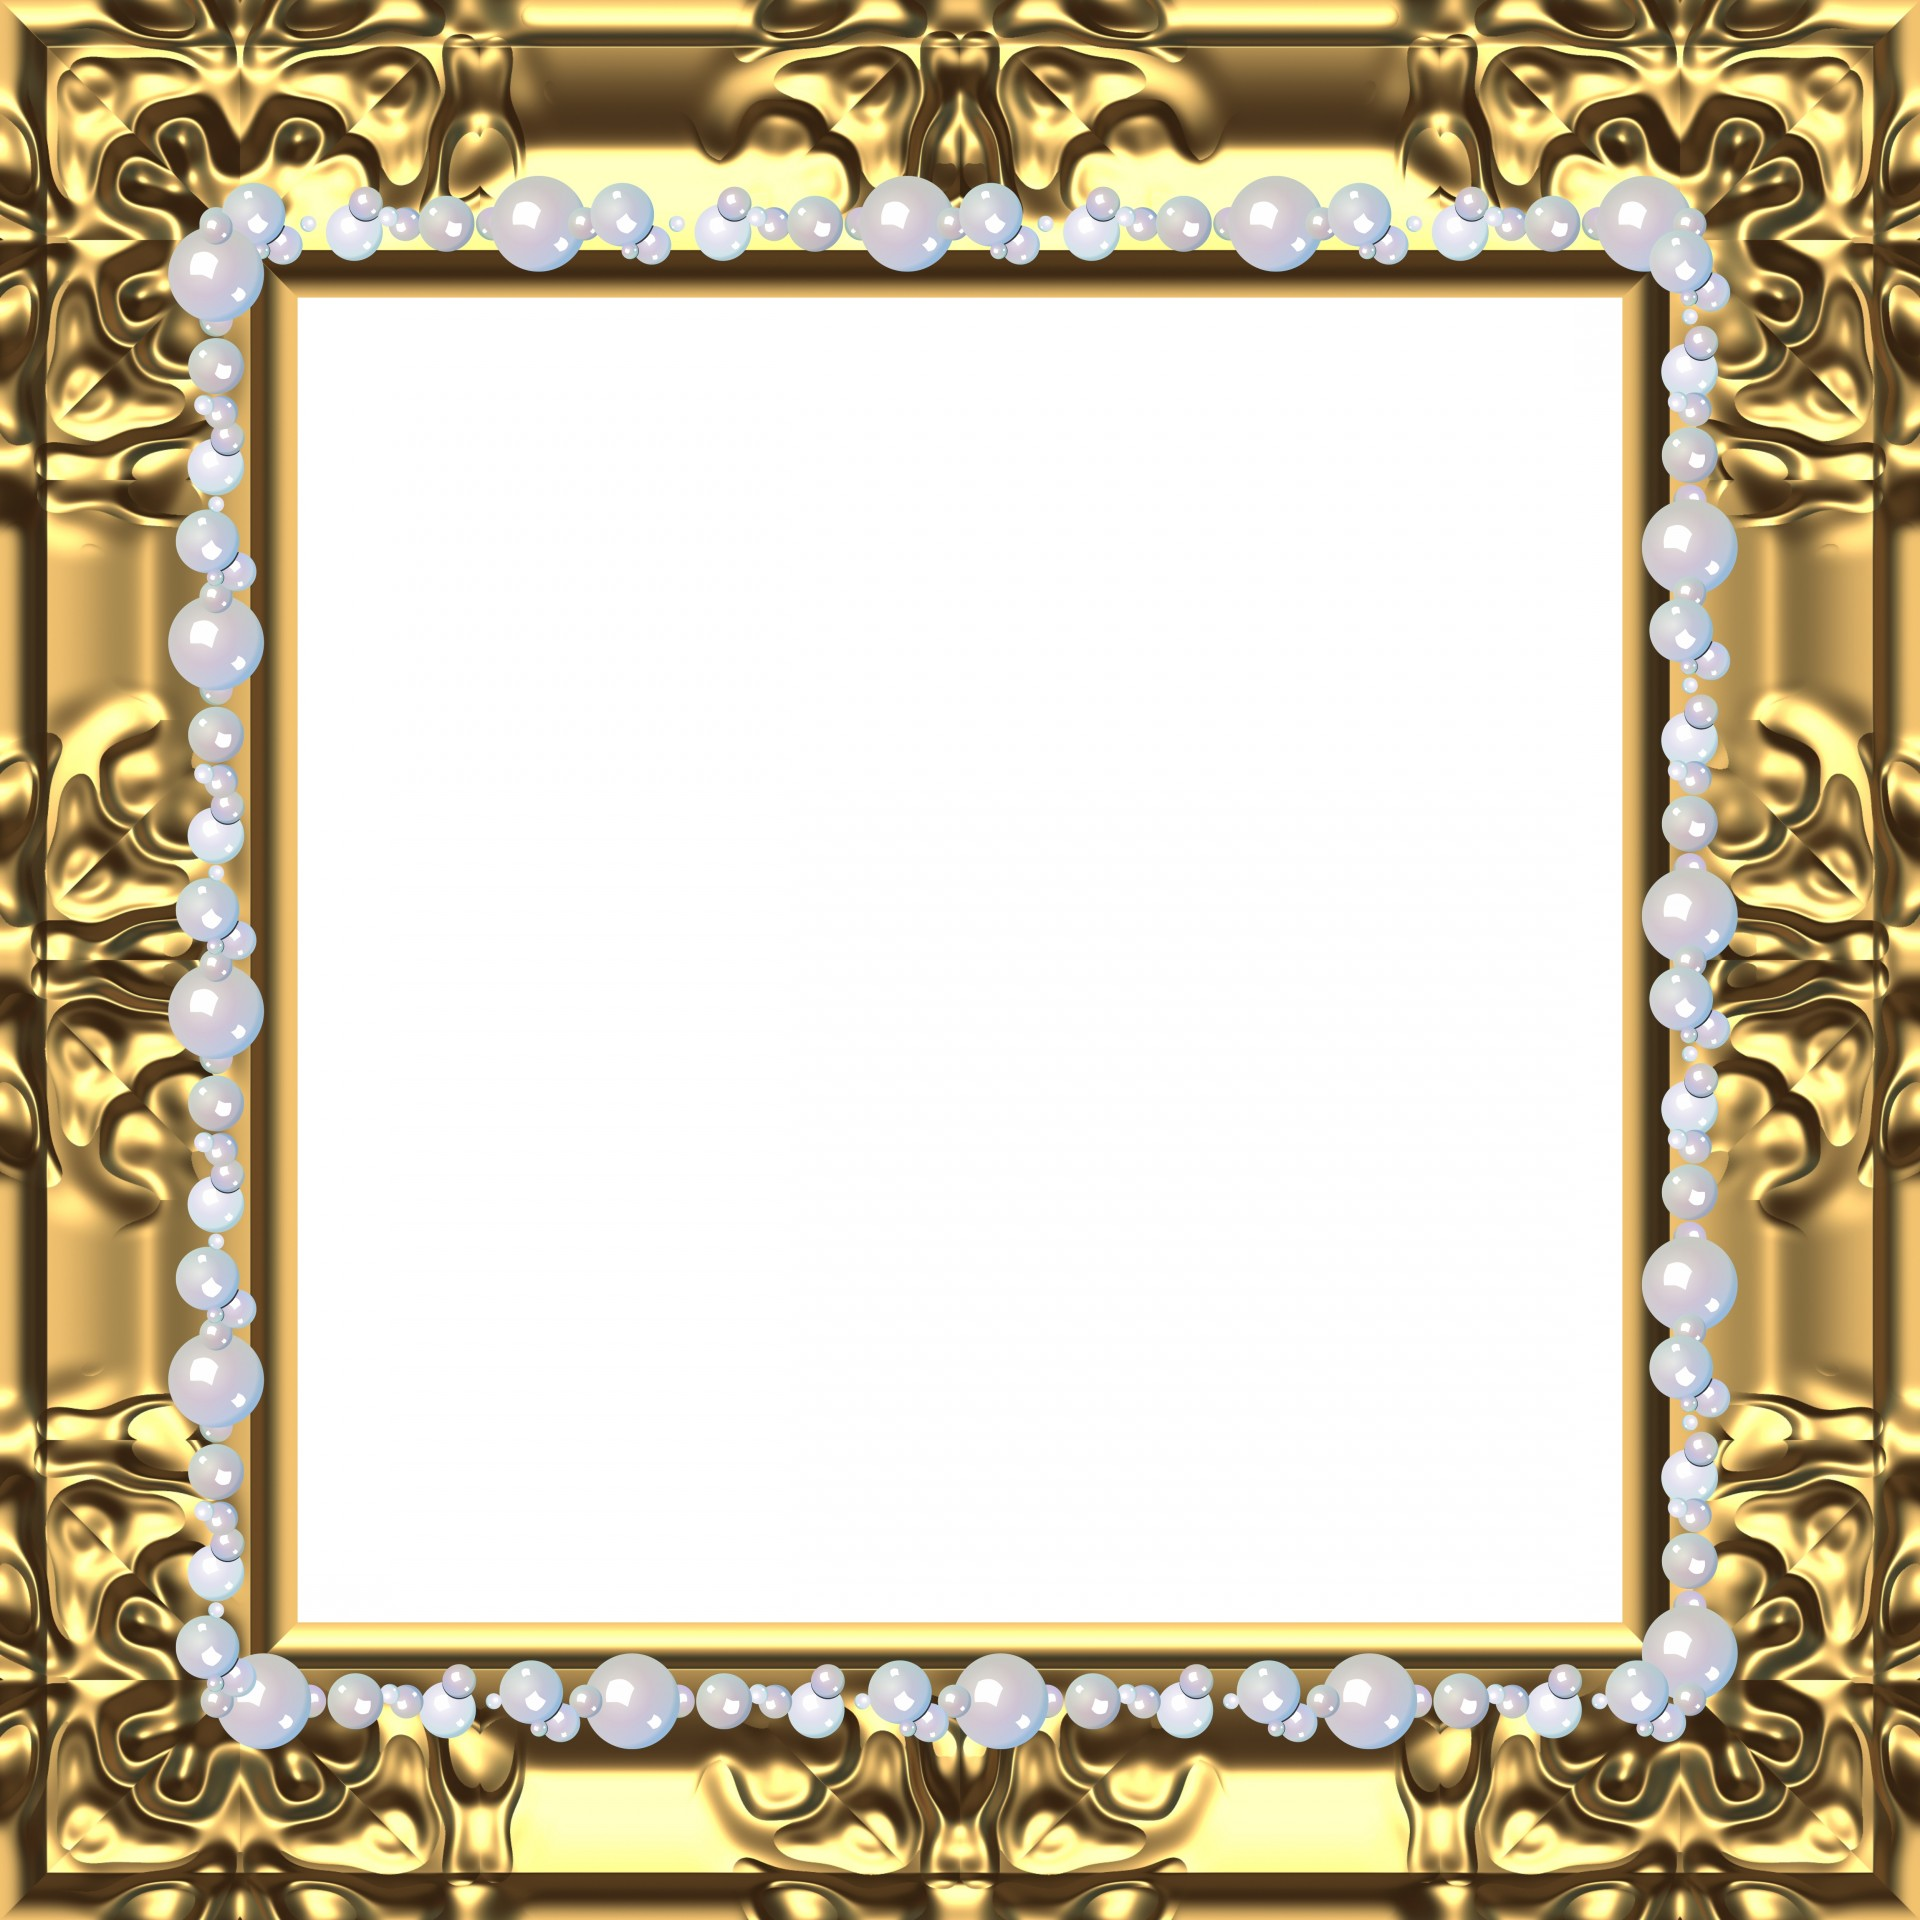 designs vintage golden frame border design and gold vintage frame